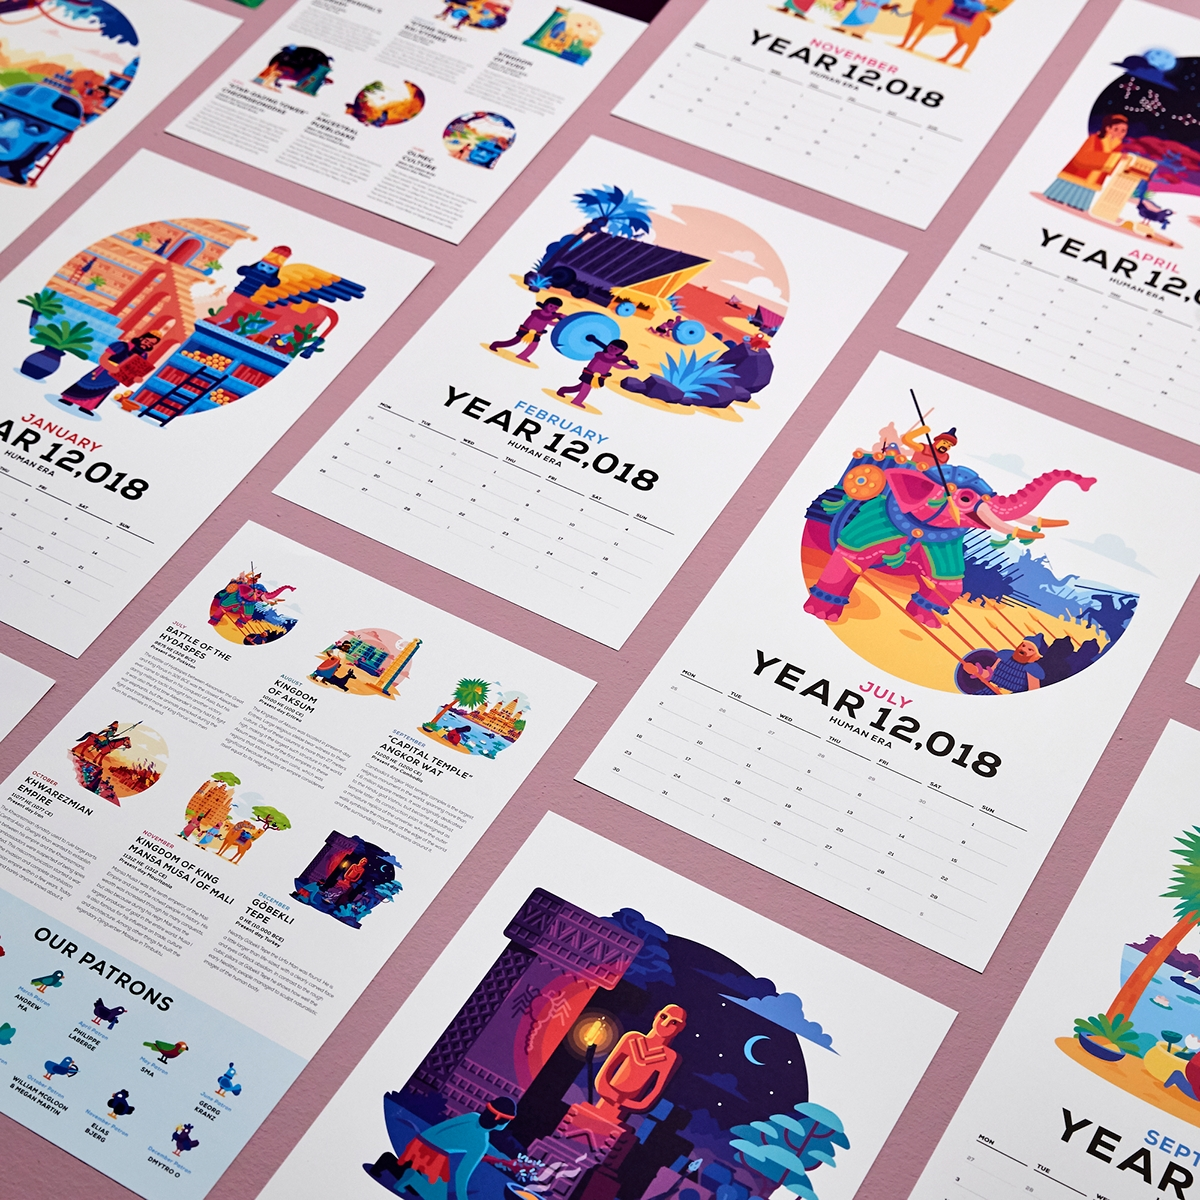 The Human Era Calender 12,018 On Behance